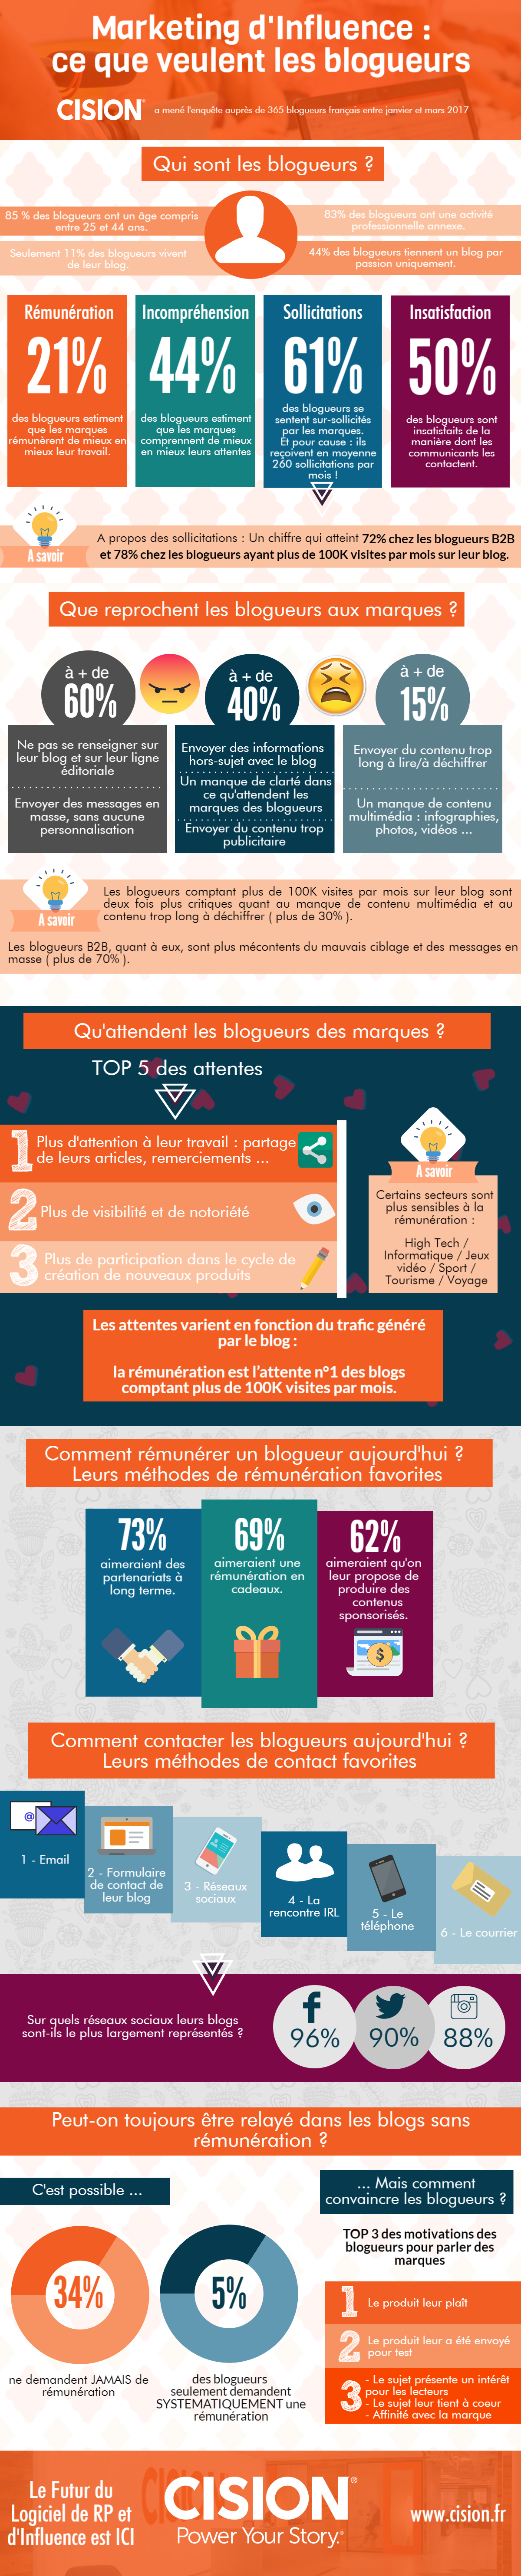 infographie marketing influence blogueurs